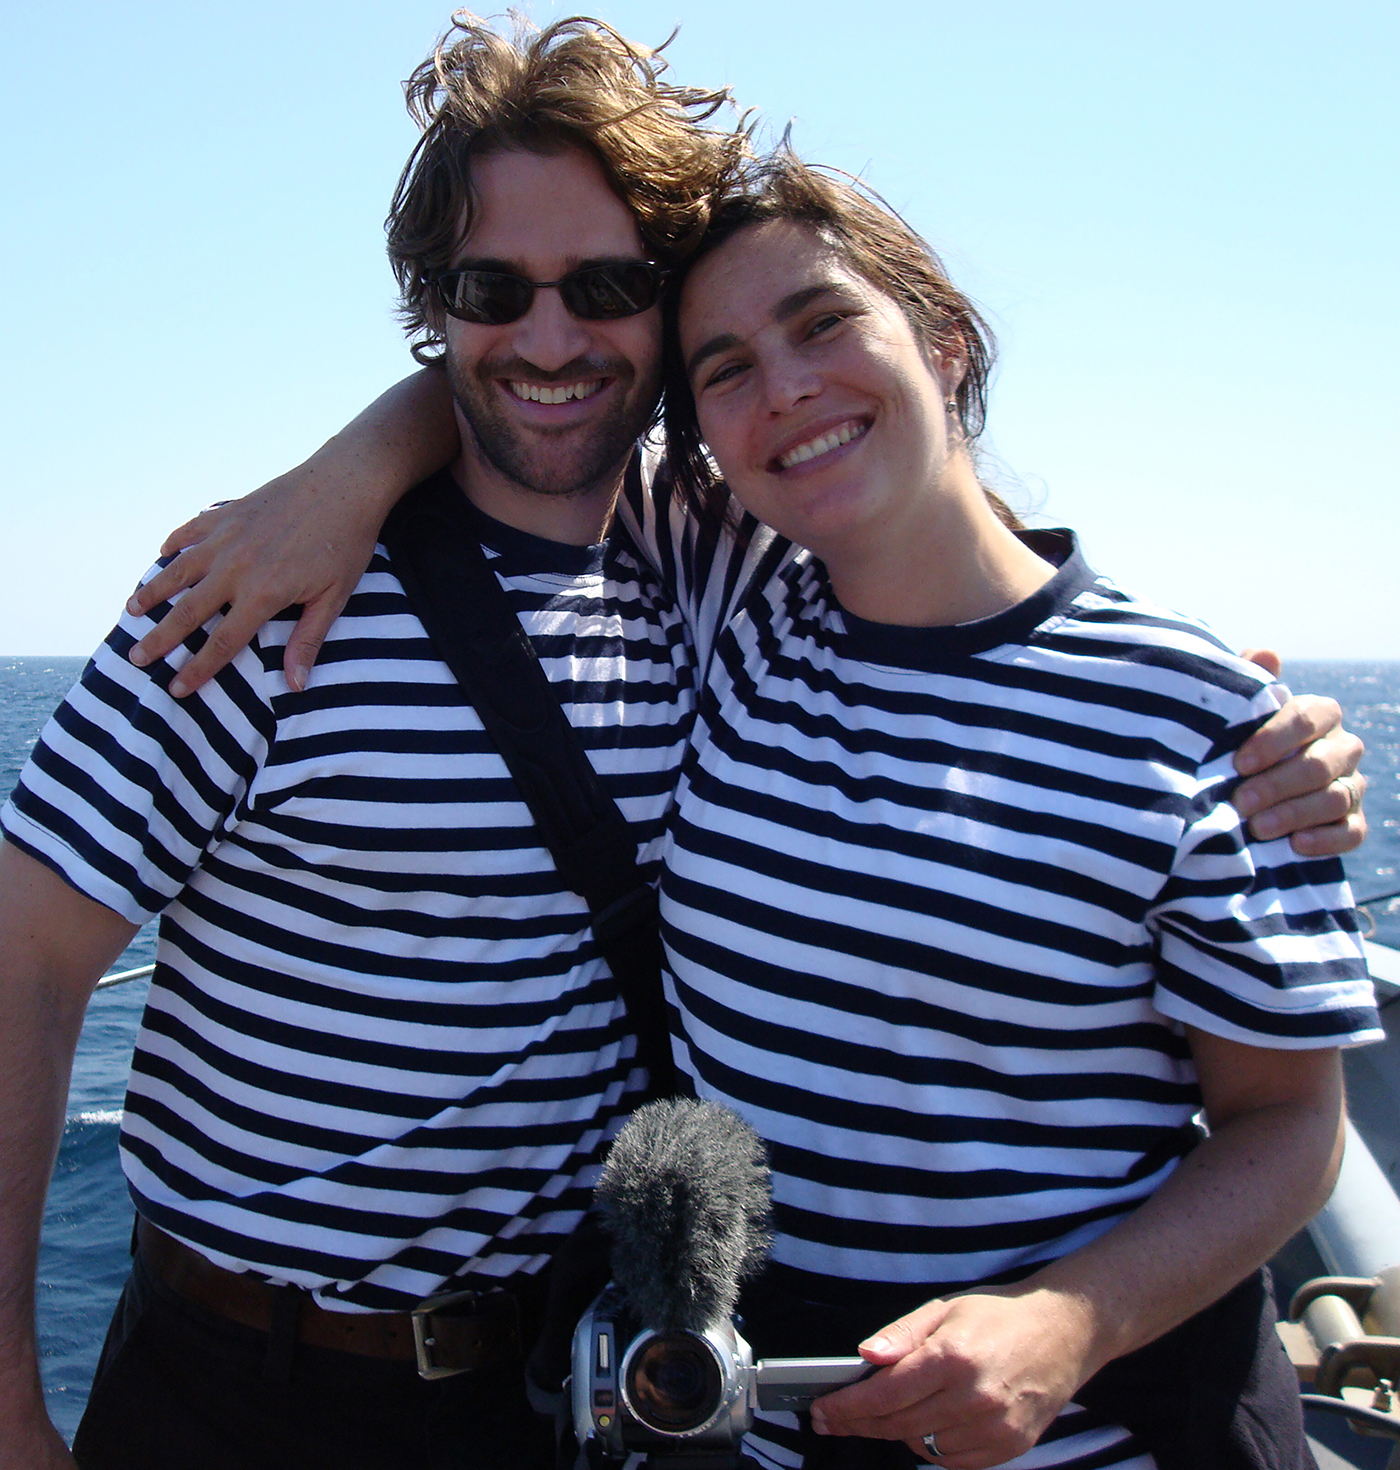 Courtenay was never a big fan of the uniform but occasionally humored me. On a pirate patrol in the Arabian Sea, 2008. We thought the sailor motif was appropriate.